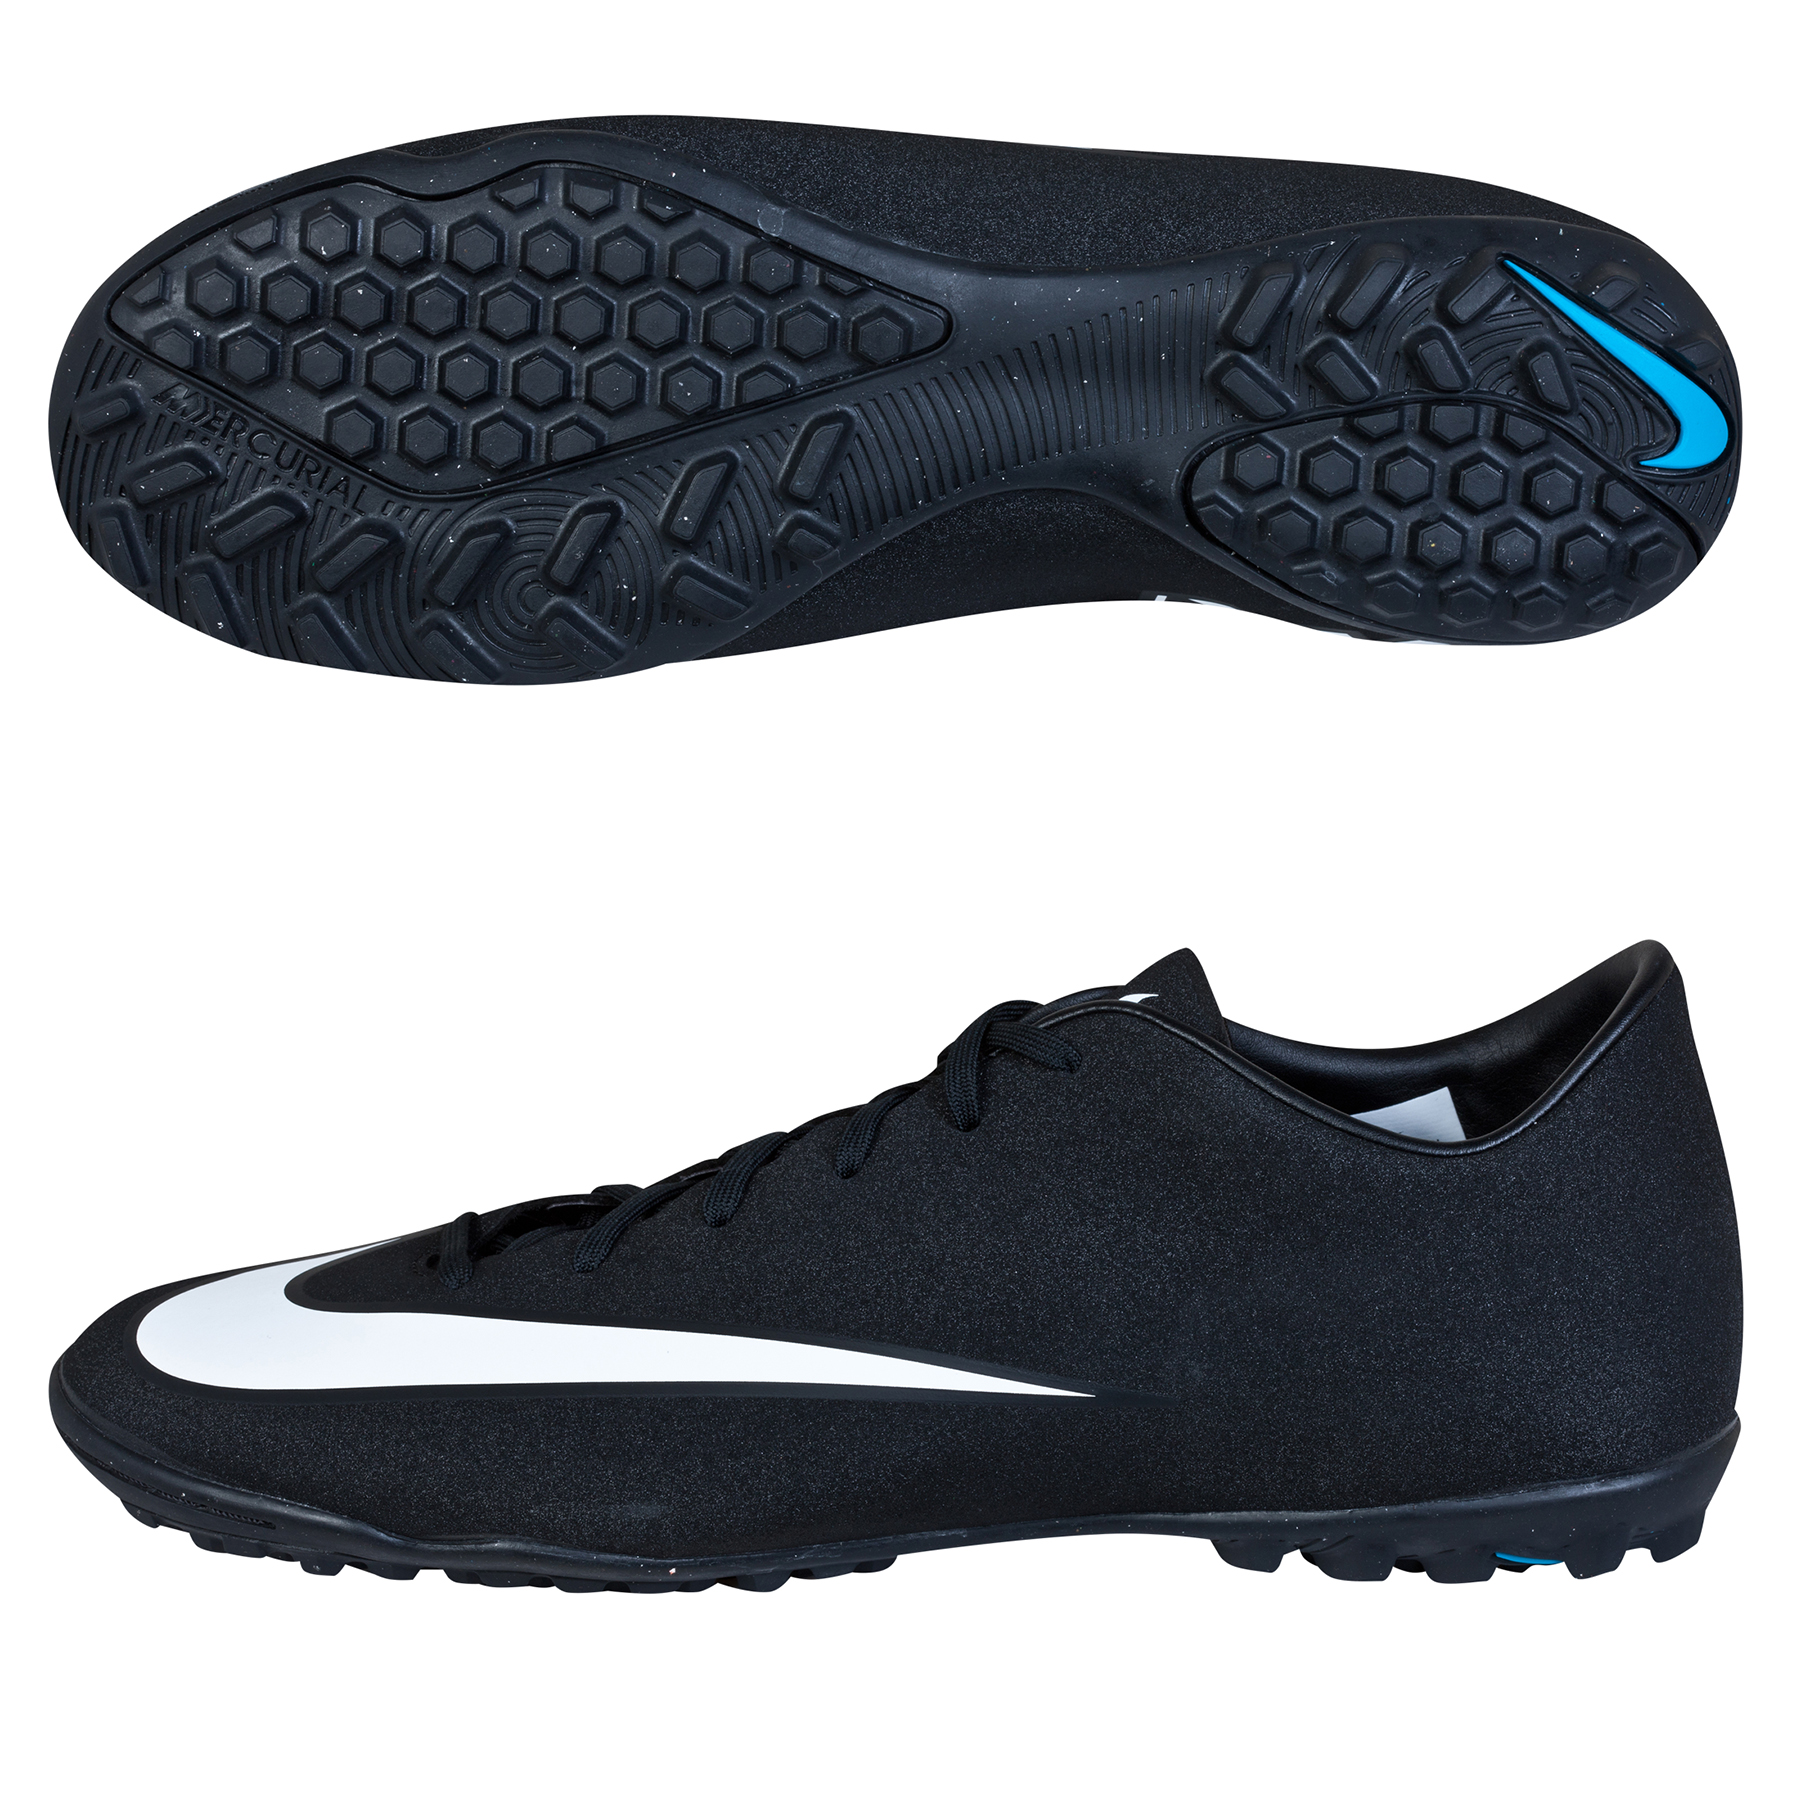 Mercurial CR7 Victory V Astroturf Black